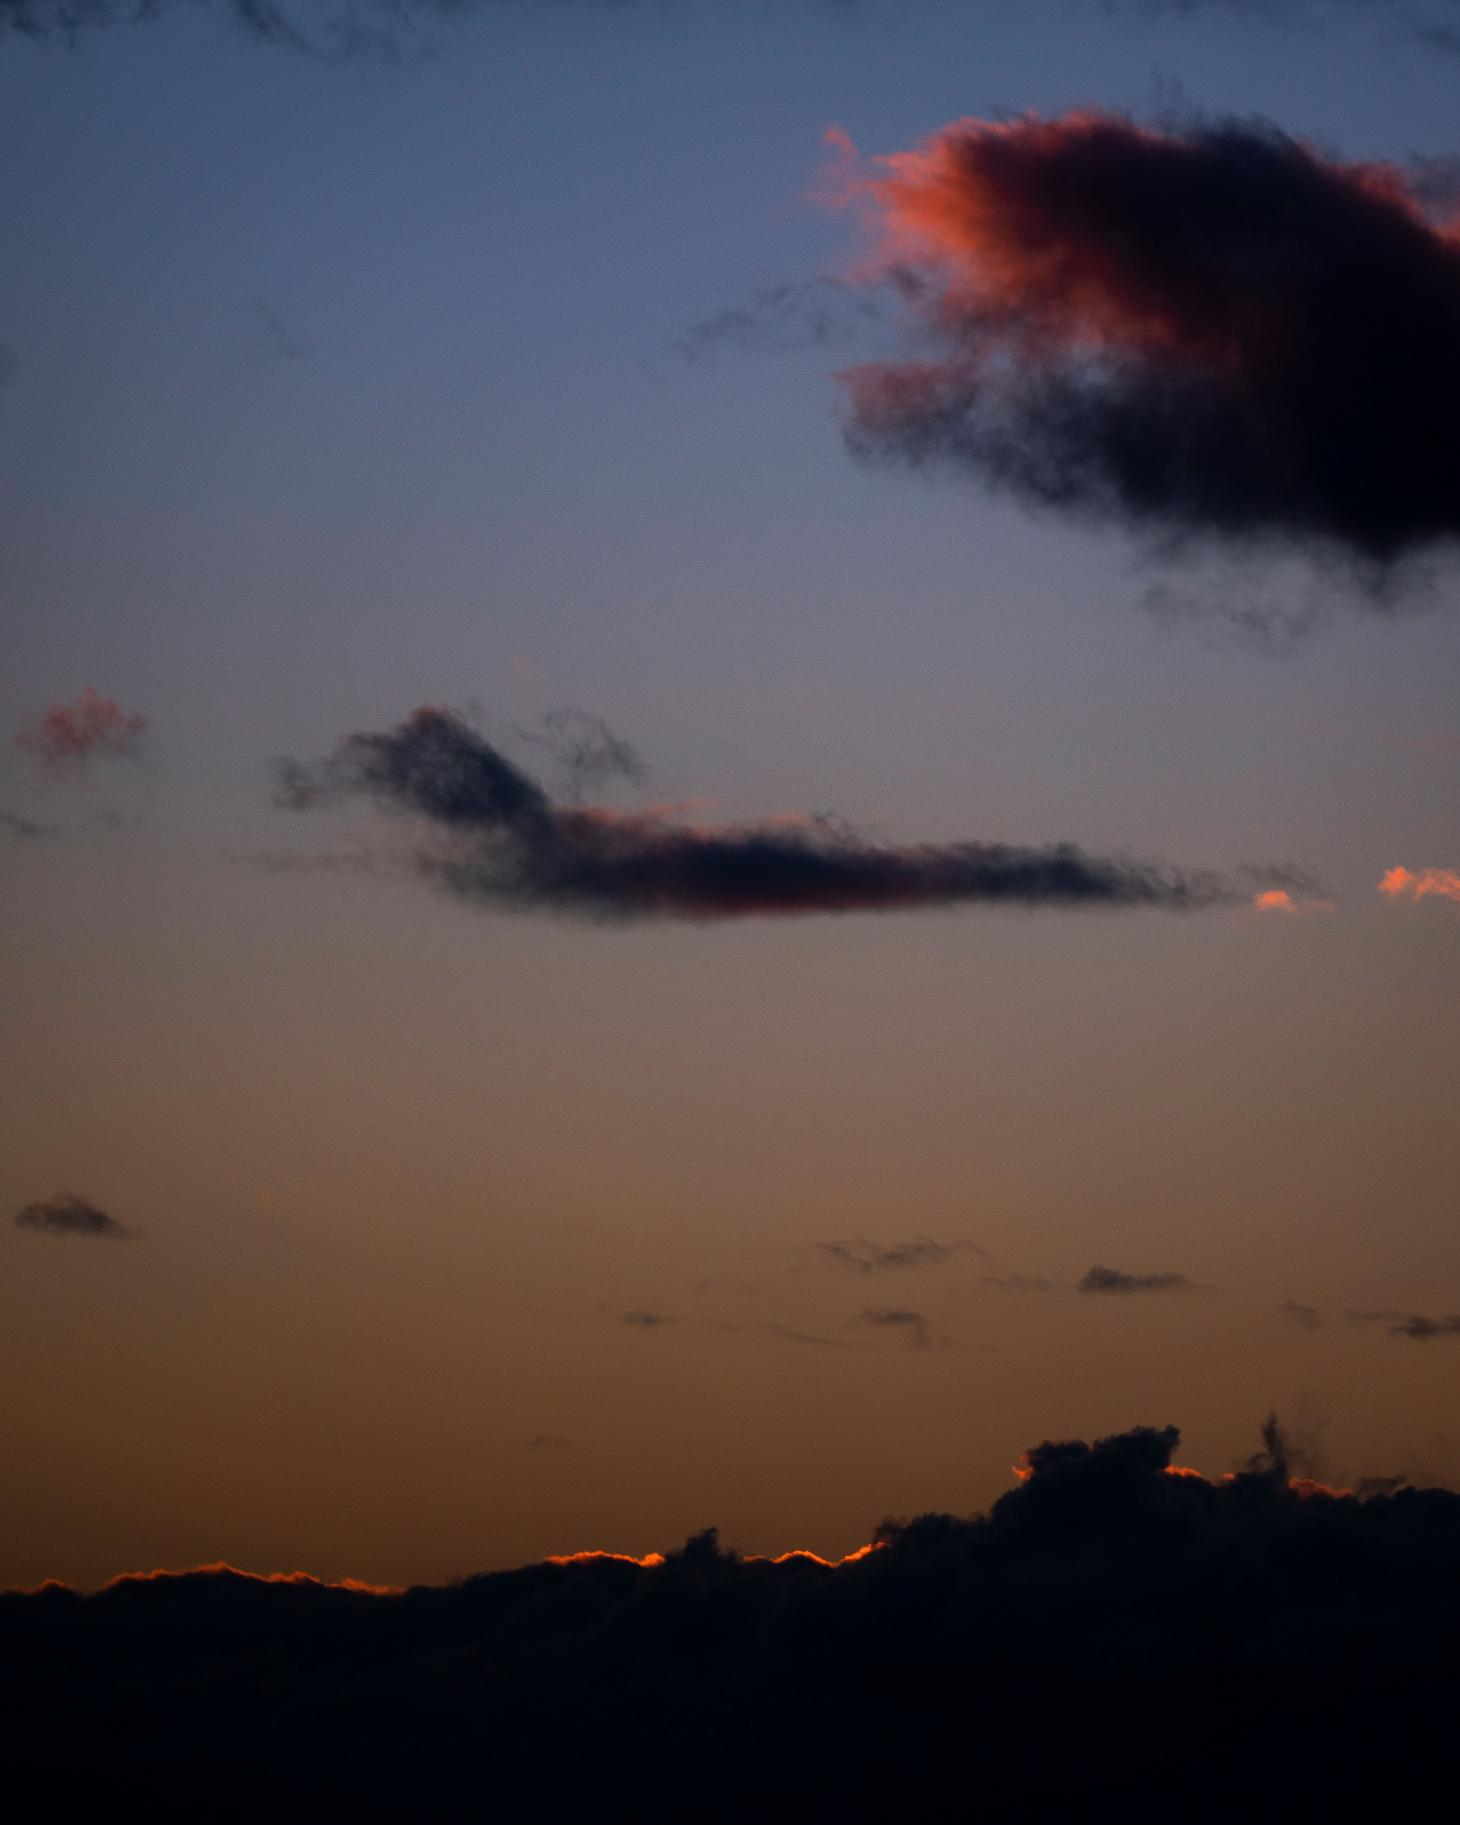 Photographby Igor Pjoort fromVyrao'sWitchy Woo campaignshowing purple sunset and dark mountains